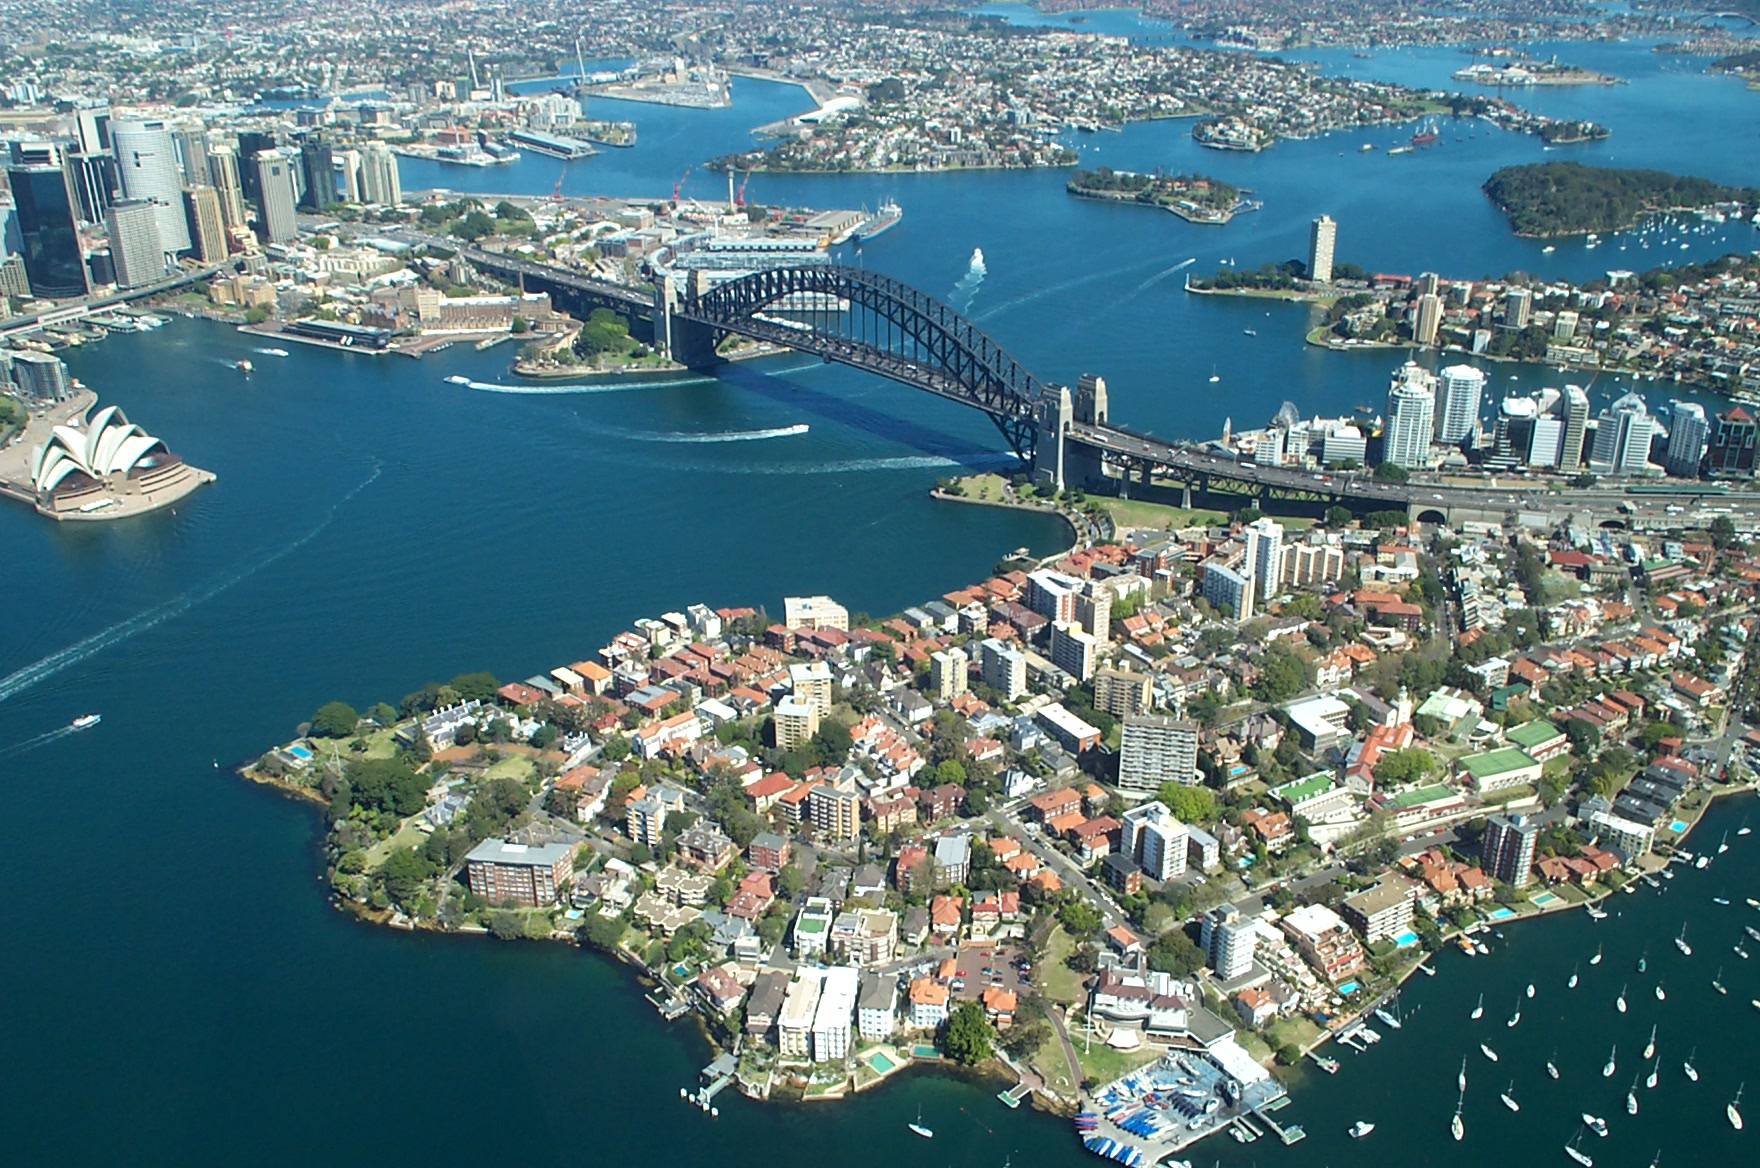 the significance of the sydney harbour A recent report by the sydney institute of marine science reveals a cornucopia of secrets lying in the sydney harbour here are 11 things you should know 1: one sydharb is an official australian .